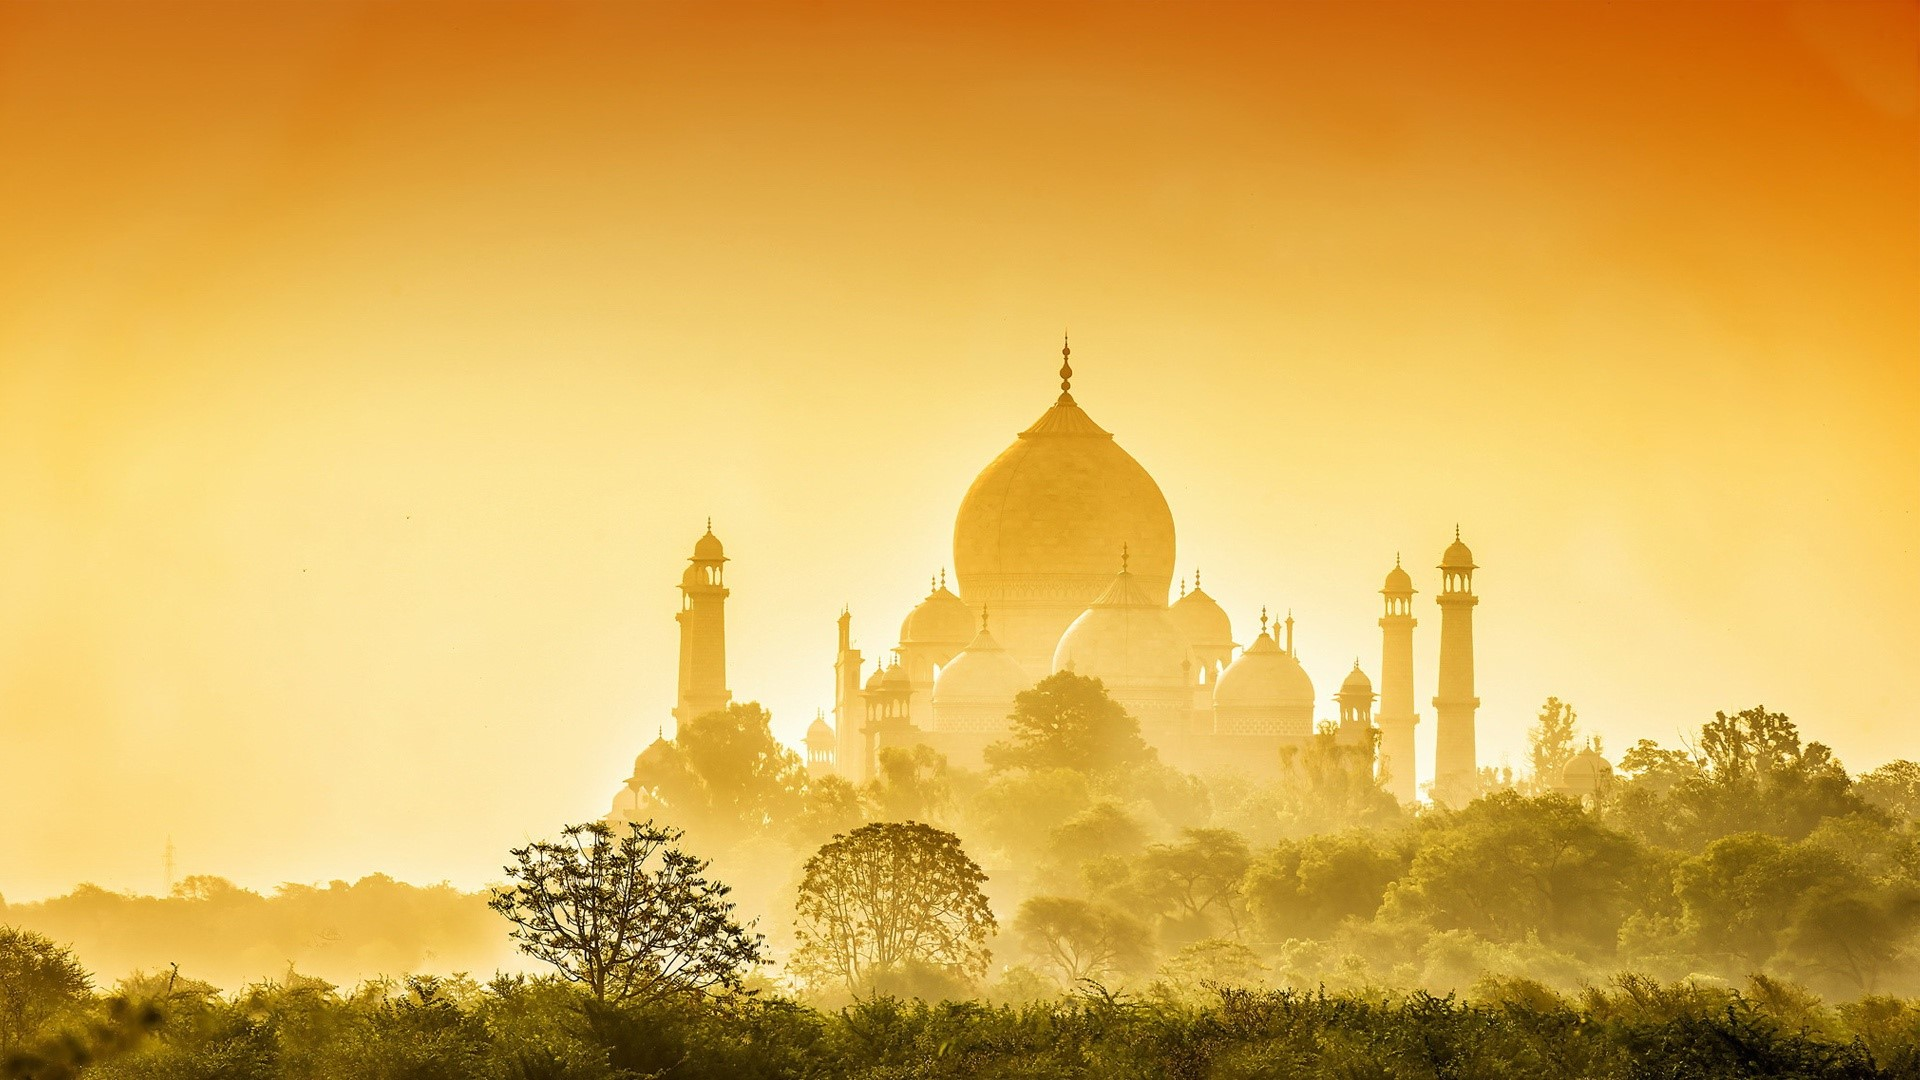 Wallpaper Golden taj mahal